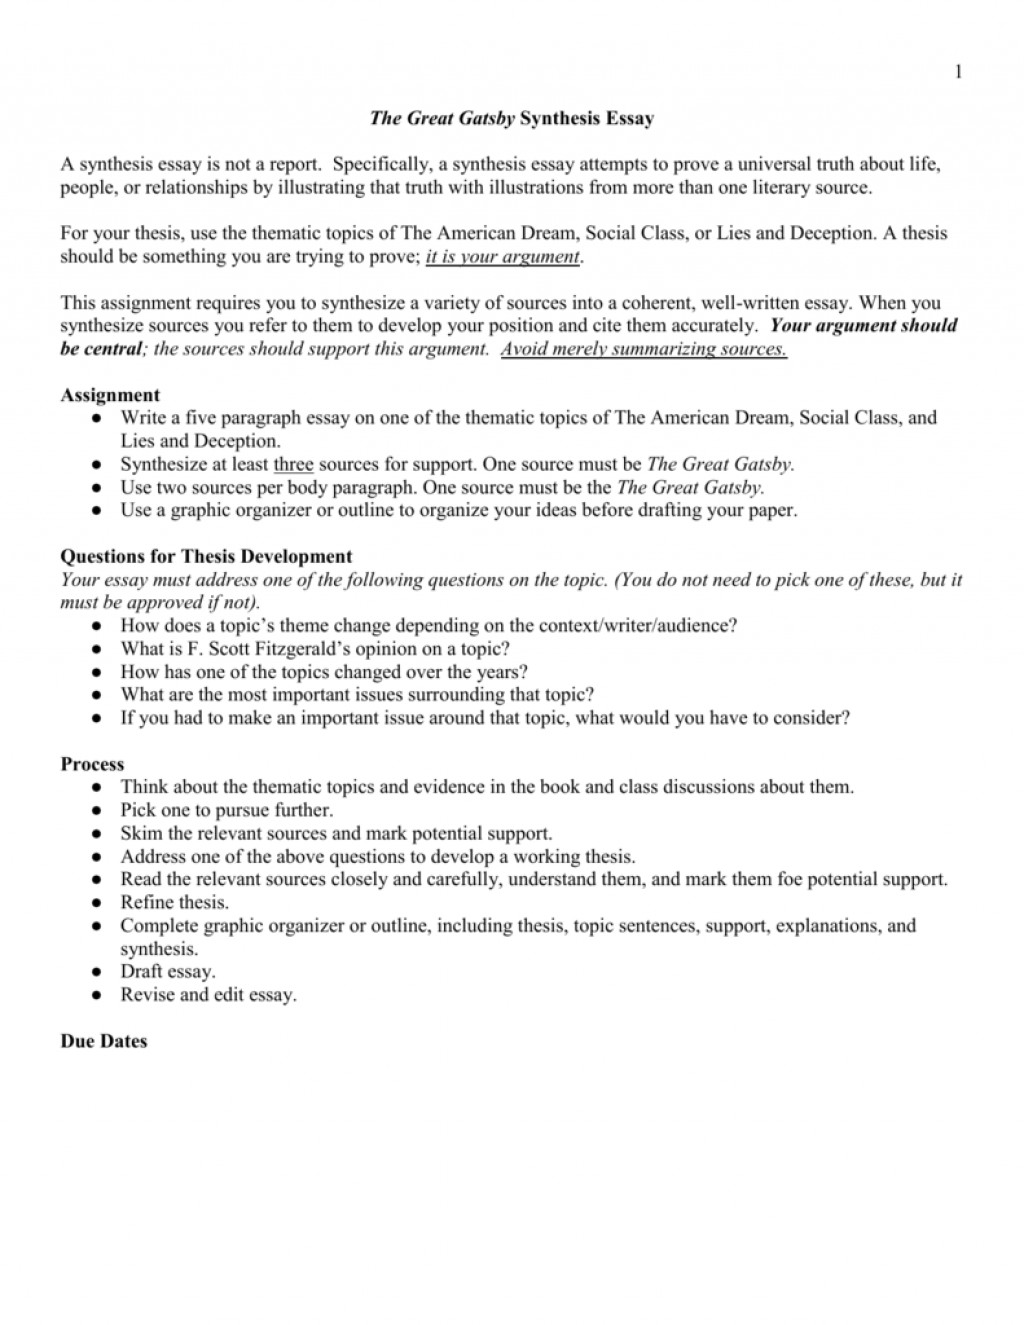 020 009200484 1 The Great Gatsby Essay Topics Exceptional Prompts American Dream Questions And Answers Research Large